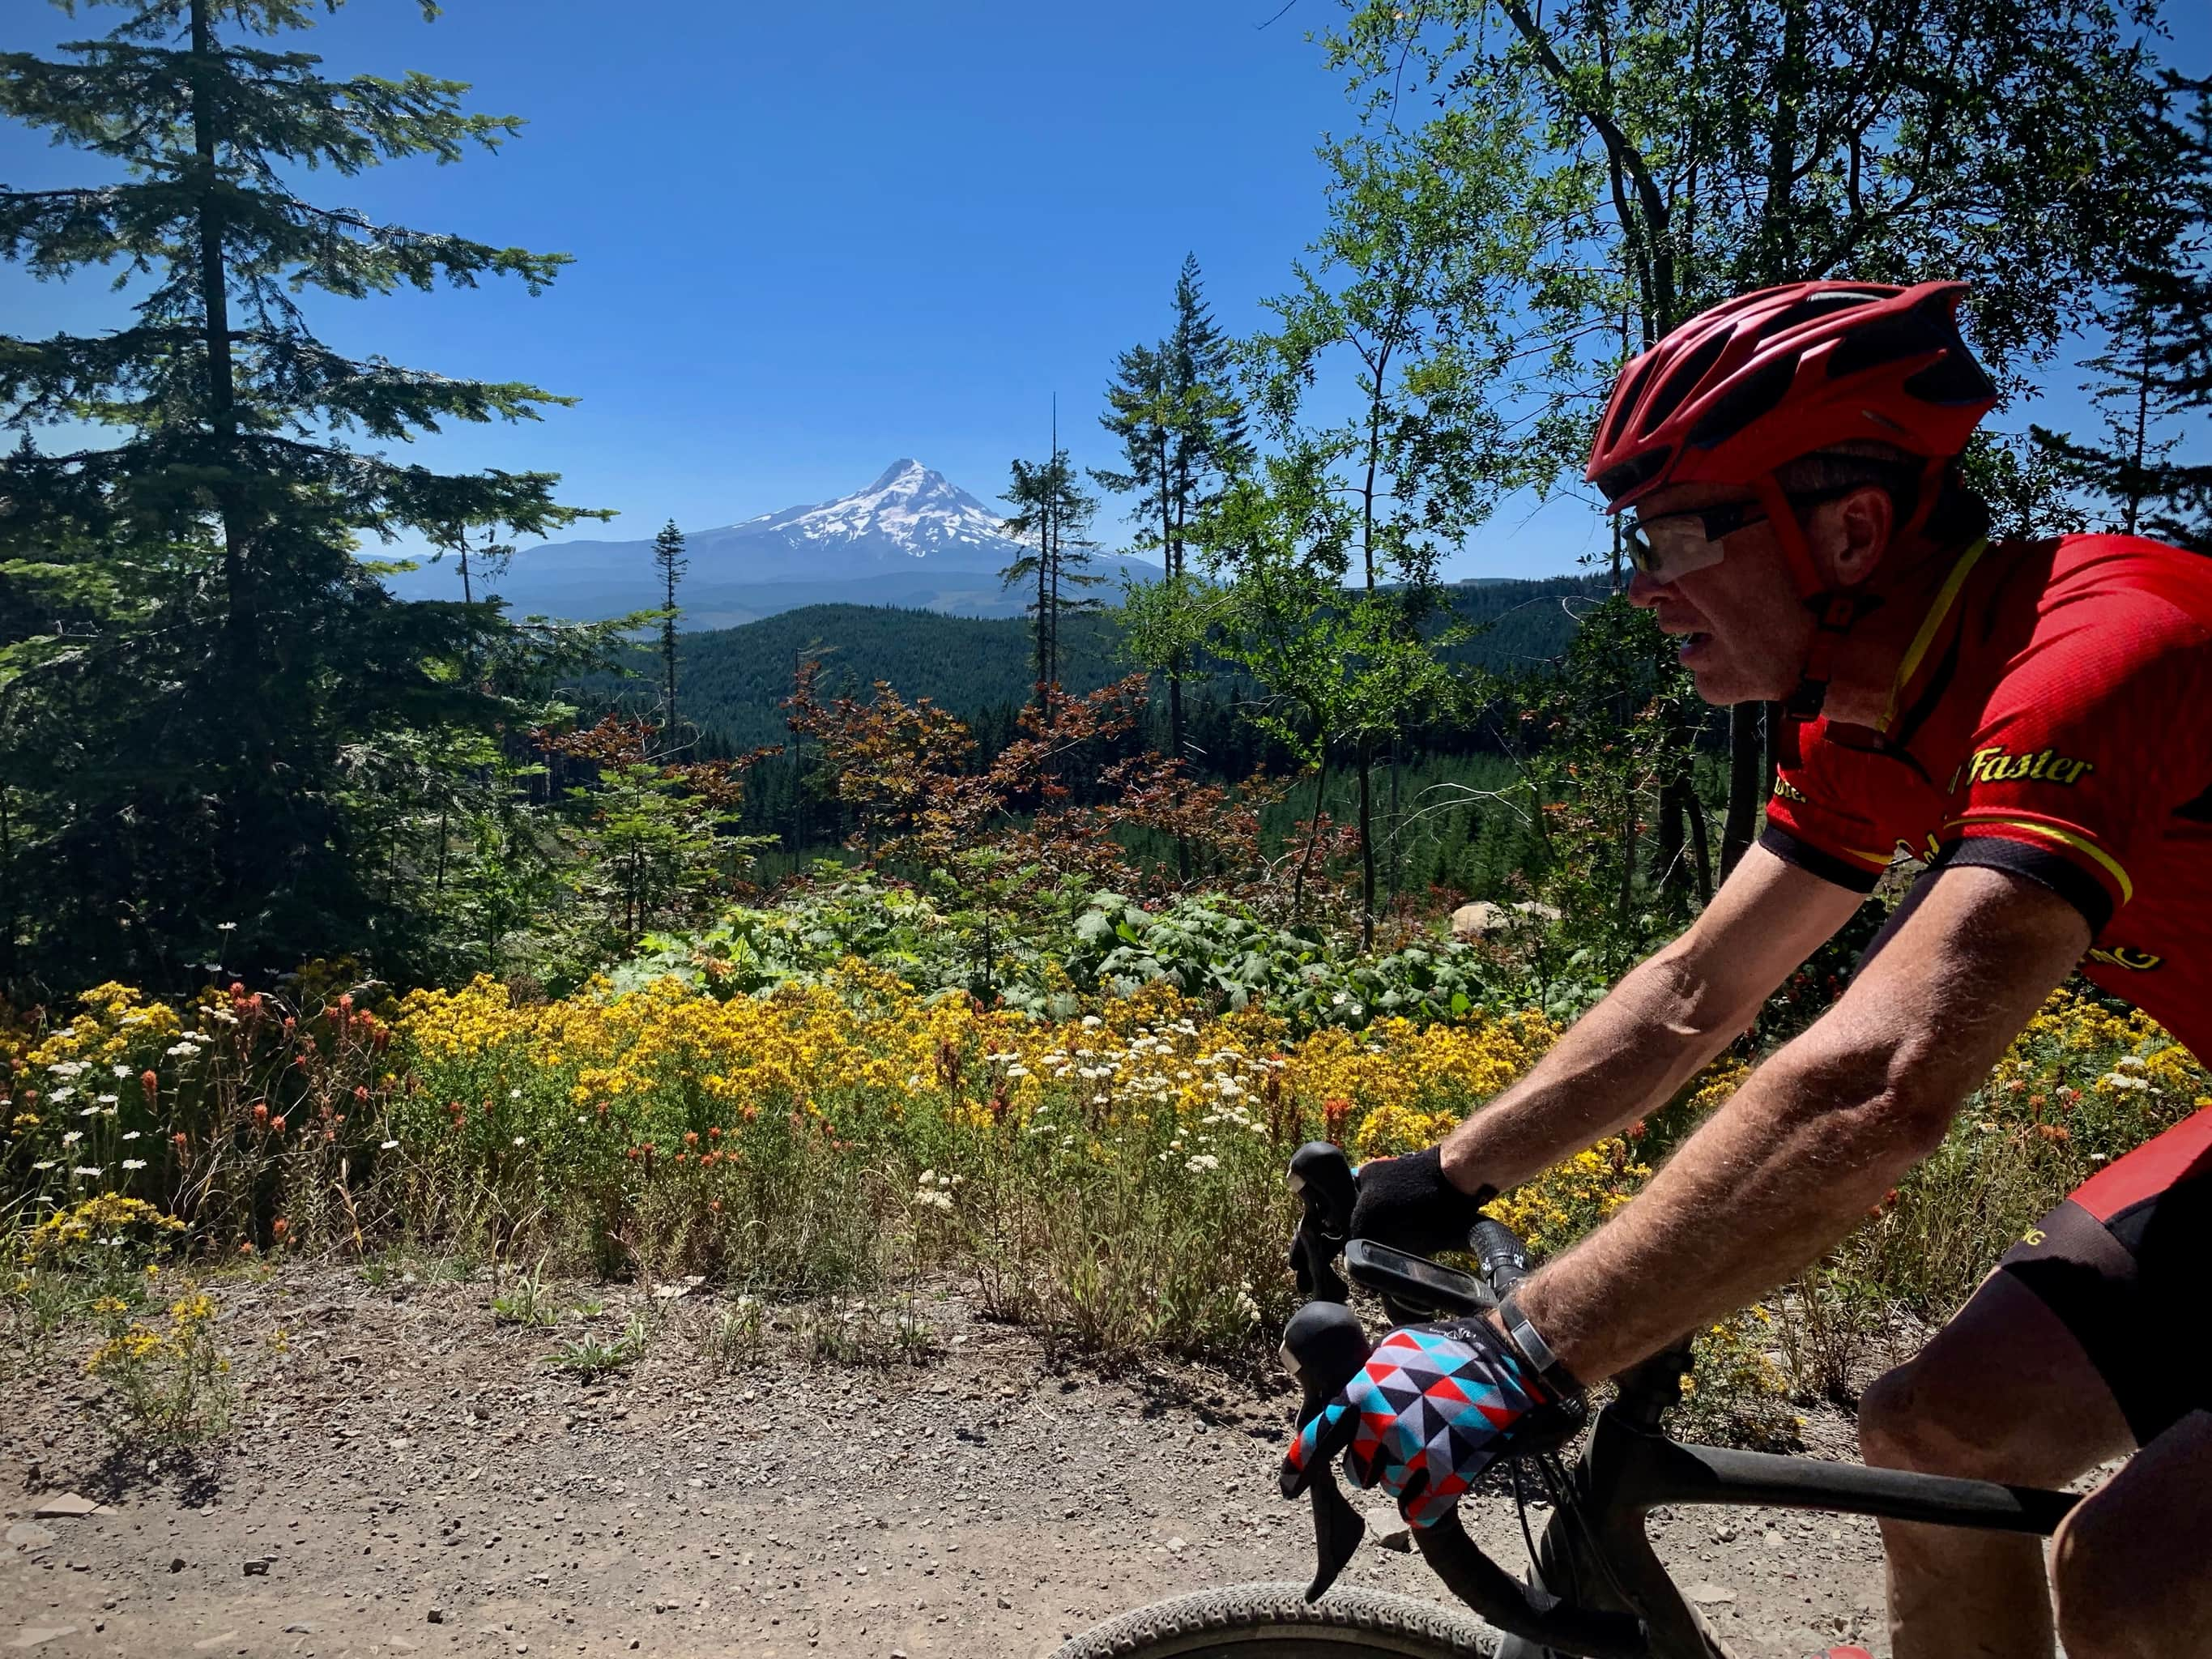 Gravel cyclist on Larch road with flowers and mountains in background in Hood River county.